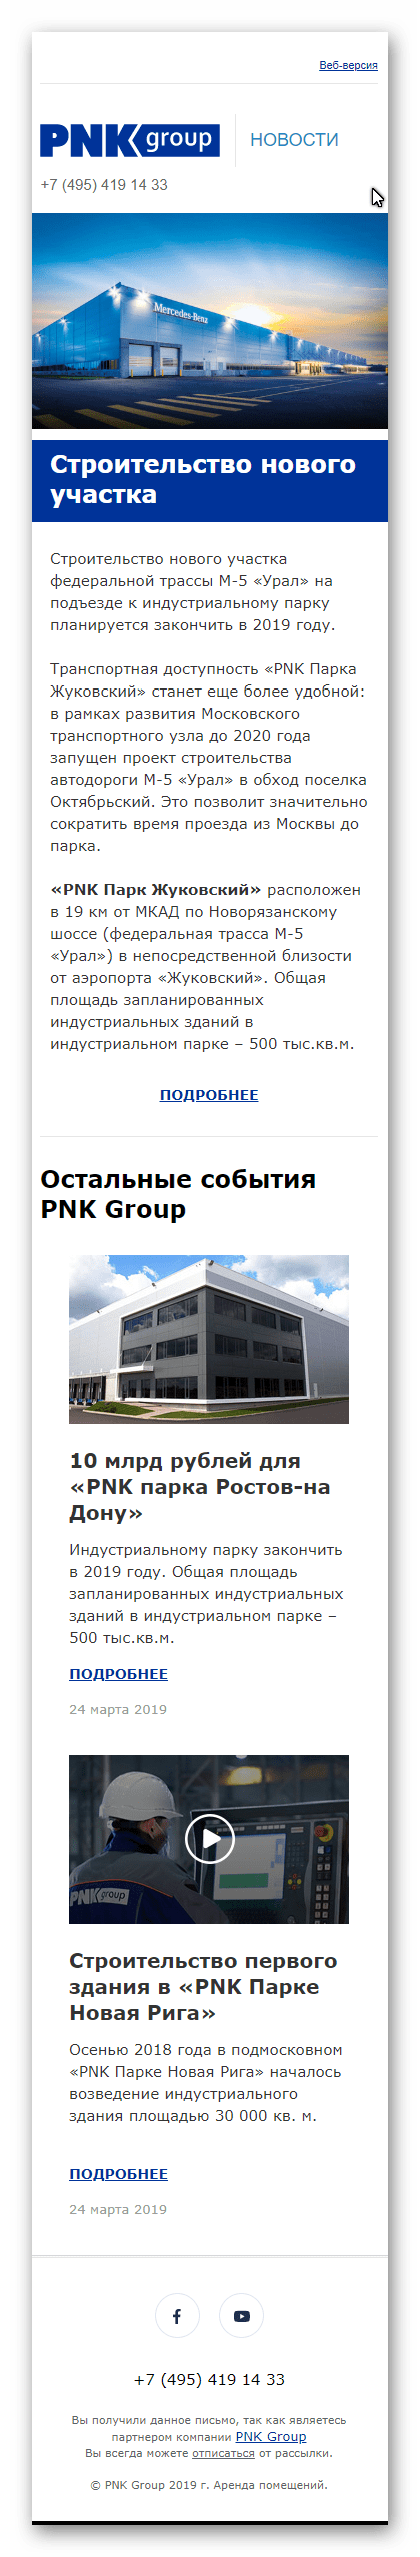 pnk group mobile